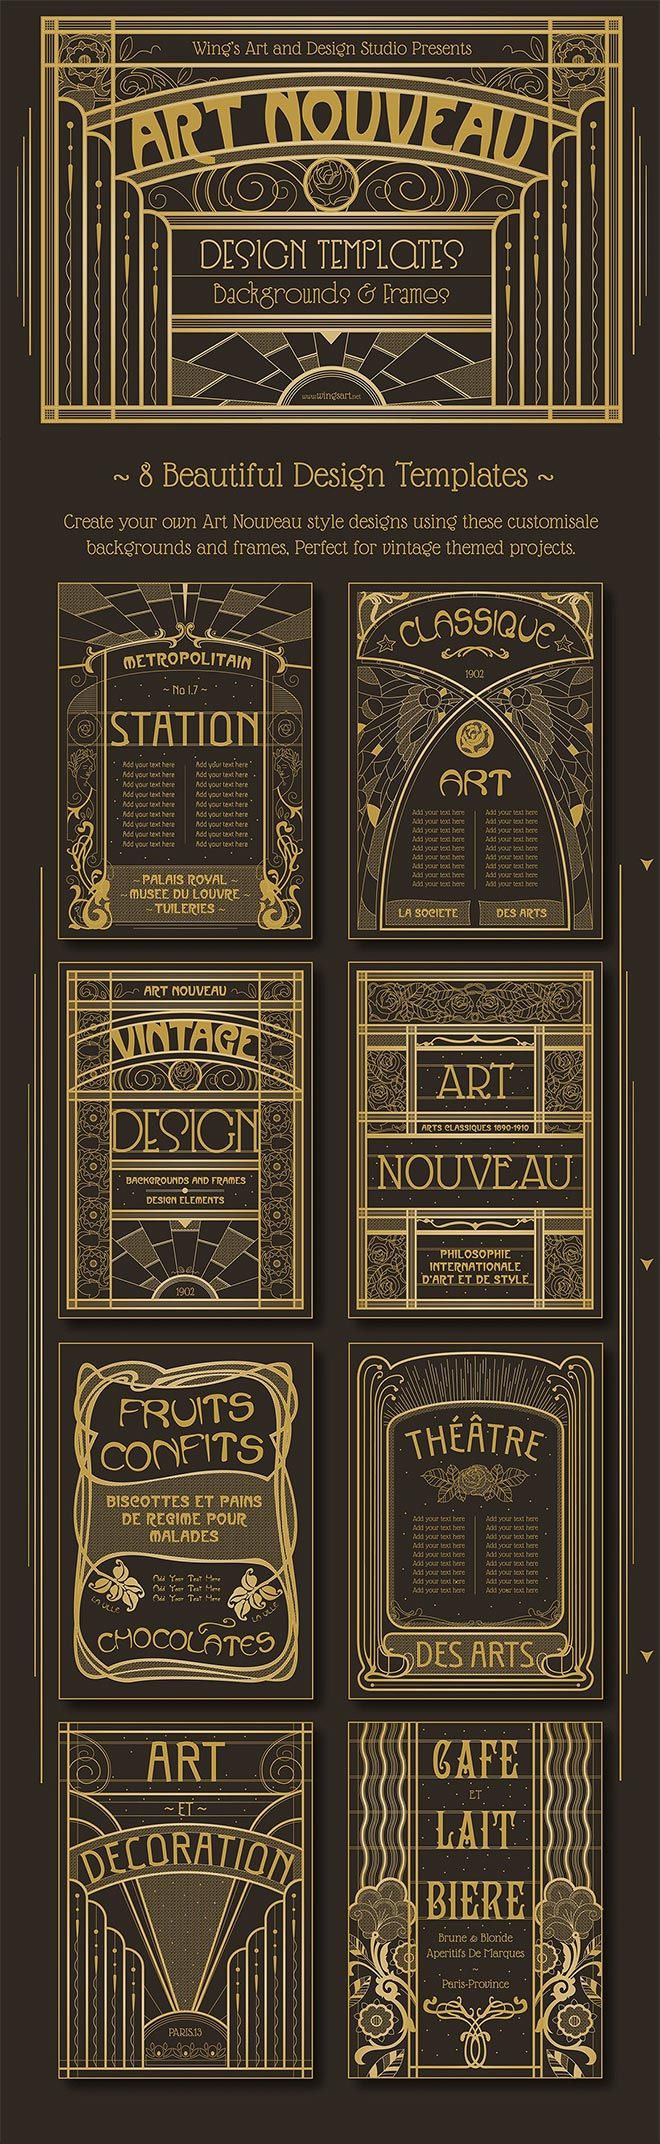 Access All Areas members are being treated to a brilliant set of design resources from Wing's Art and Design Studio this week. This collection of 8 Art Nouveau backgrounds and frames are fully customisable templates that take their inspiration from the classical architecture and shop fronts of Paris. Pre-set text paths, fully editable vector elements, …